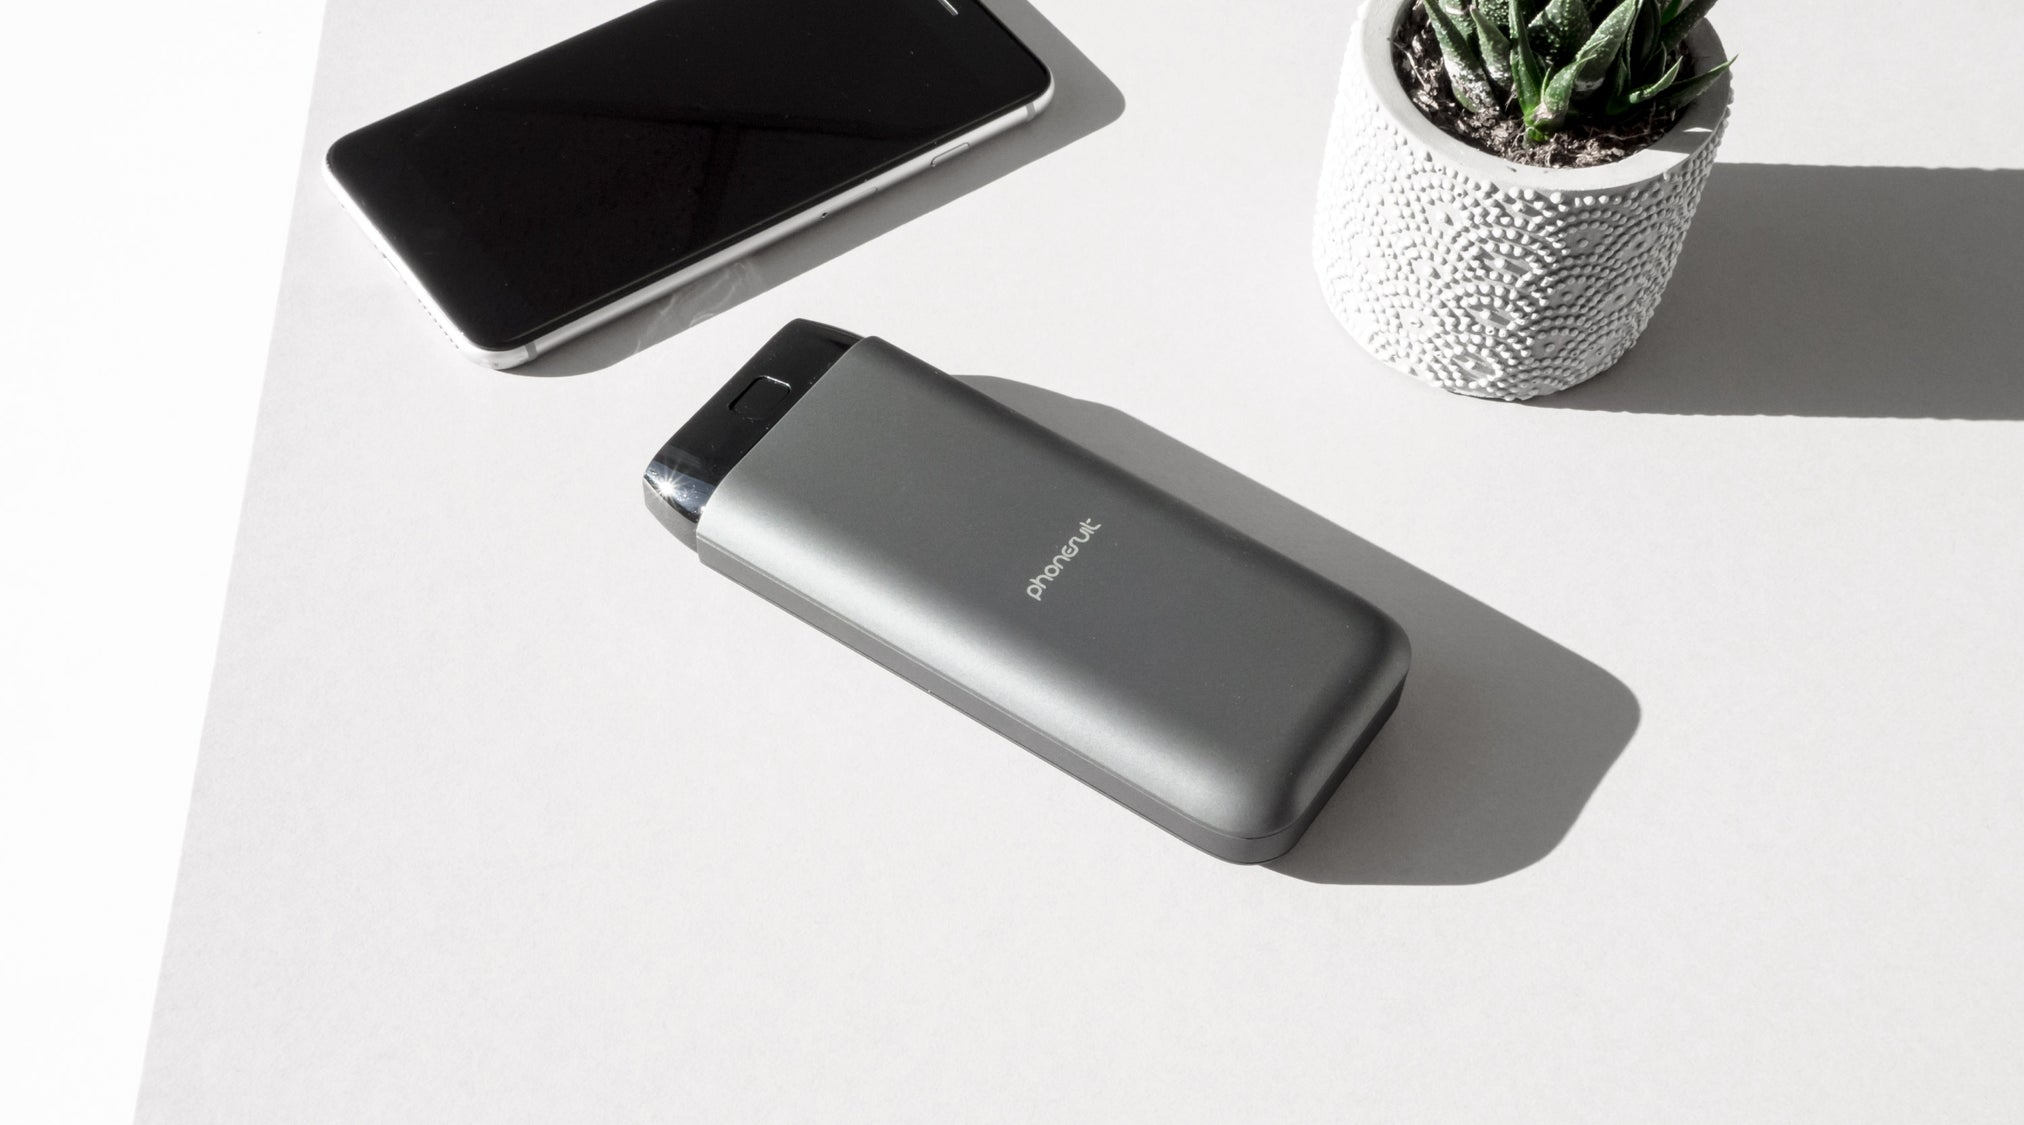 Energy Core Max Power Bank 20,000mAh for iPhone, Samsung, & More